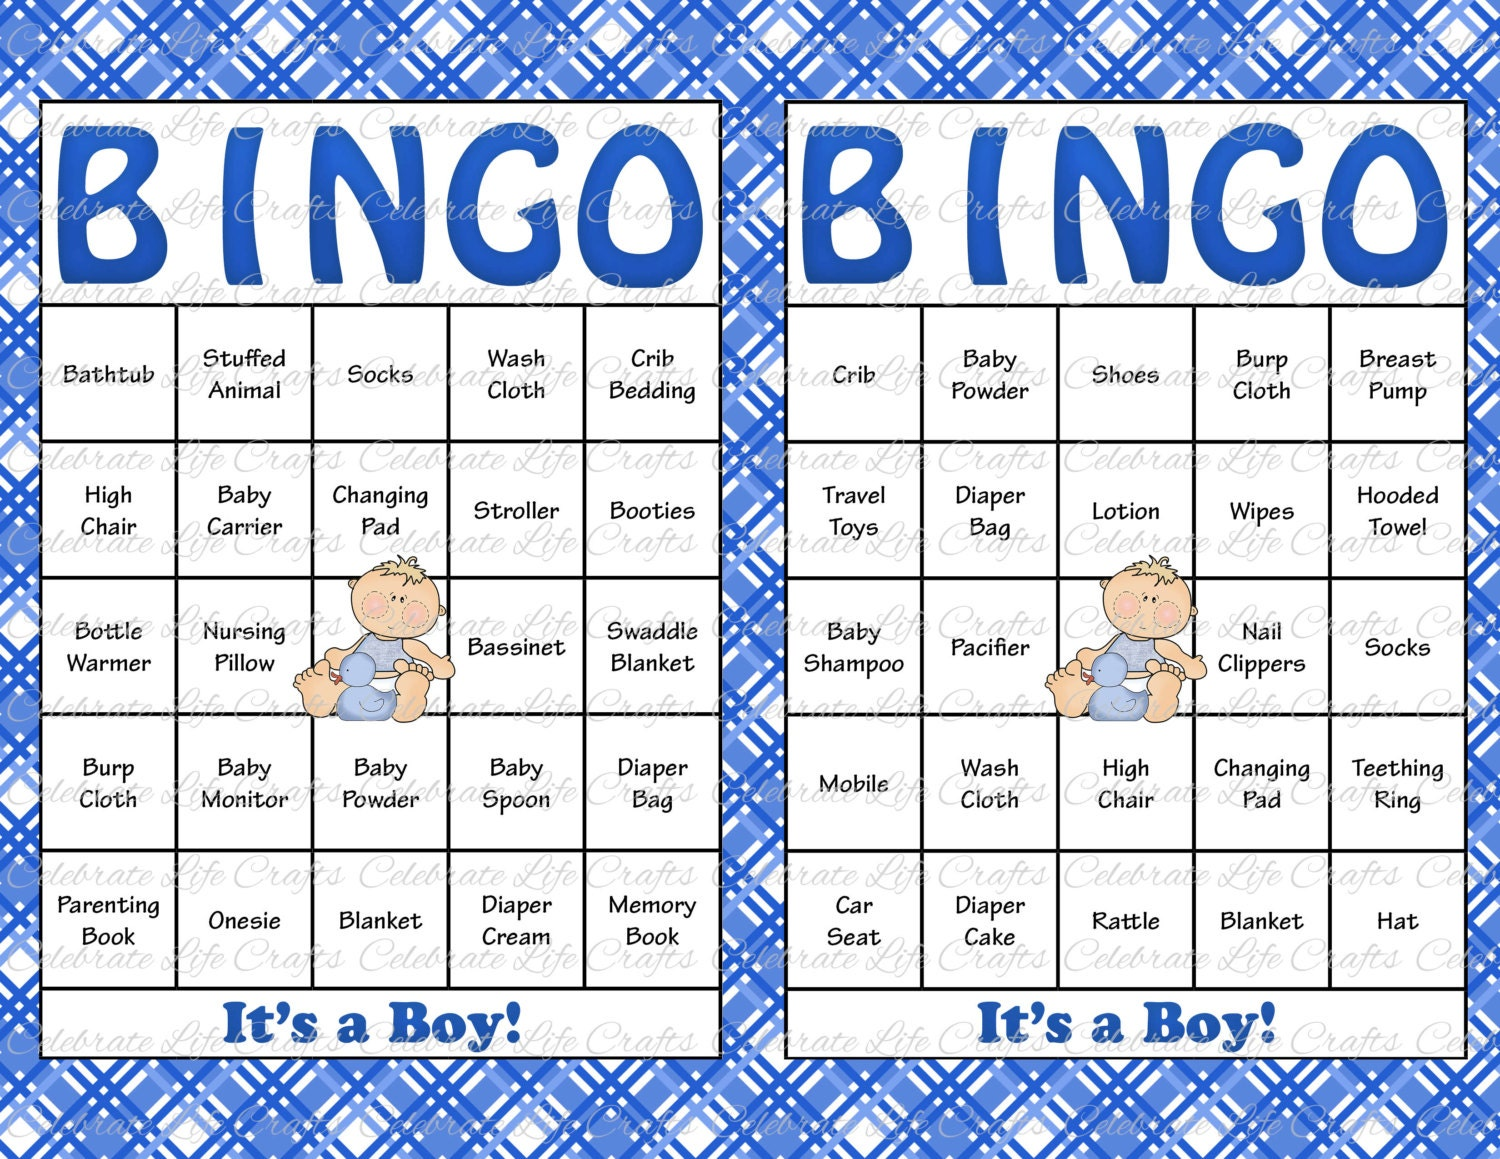 Invaluable image within free printable baby shower bingo cards for 30 people